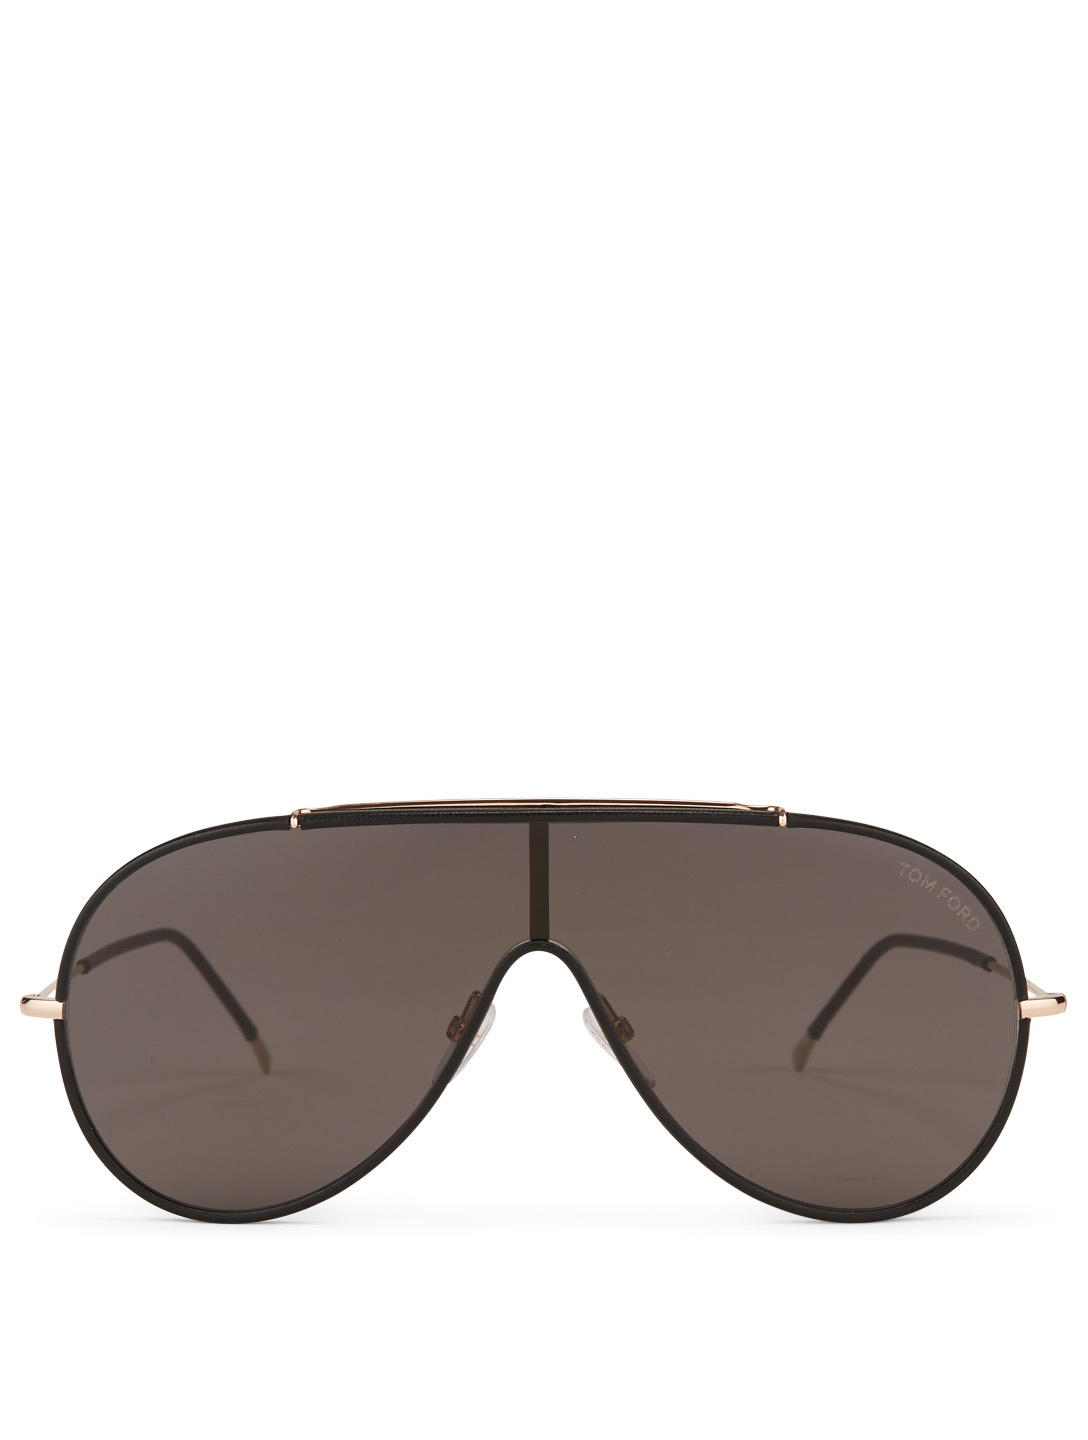 TOM FORD Mack Shield Sunglasses Men's Black